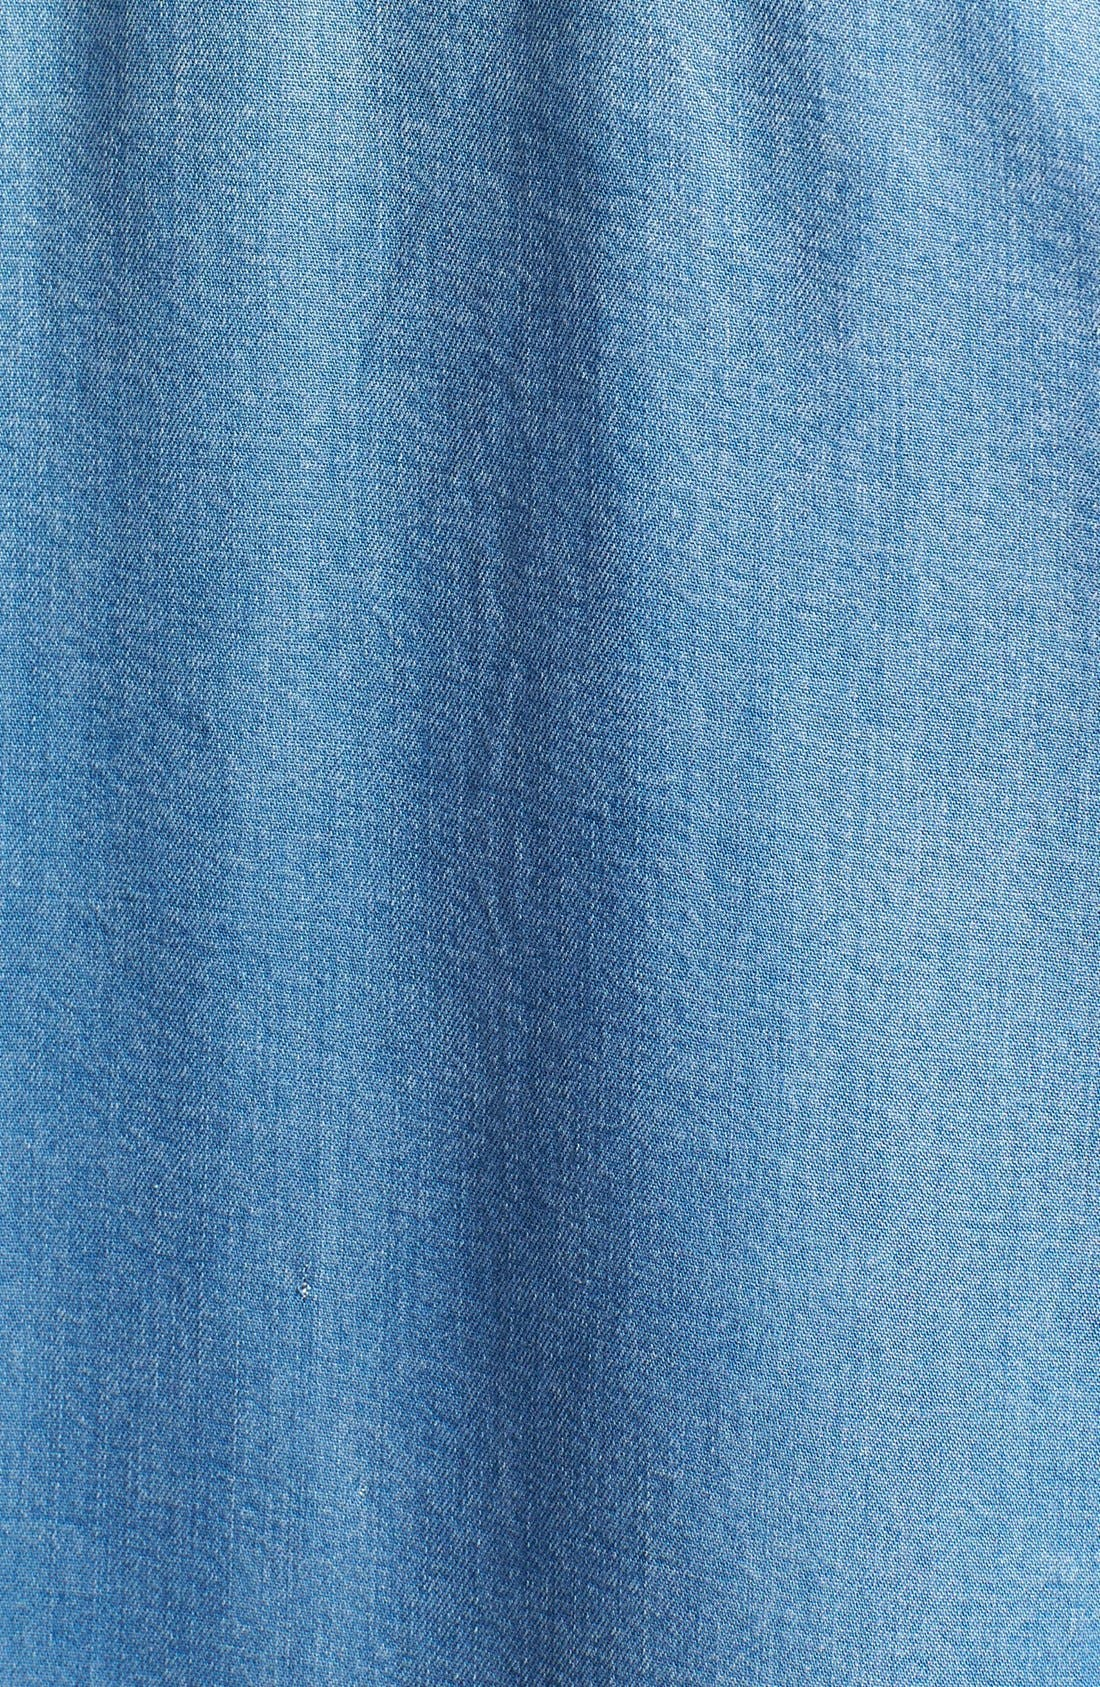 Alternate Image 3  - Sejour Chambray Shirt (Plus Size)